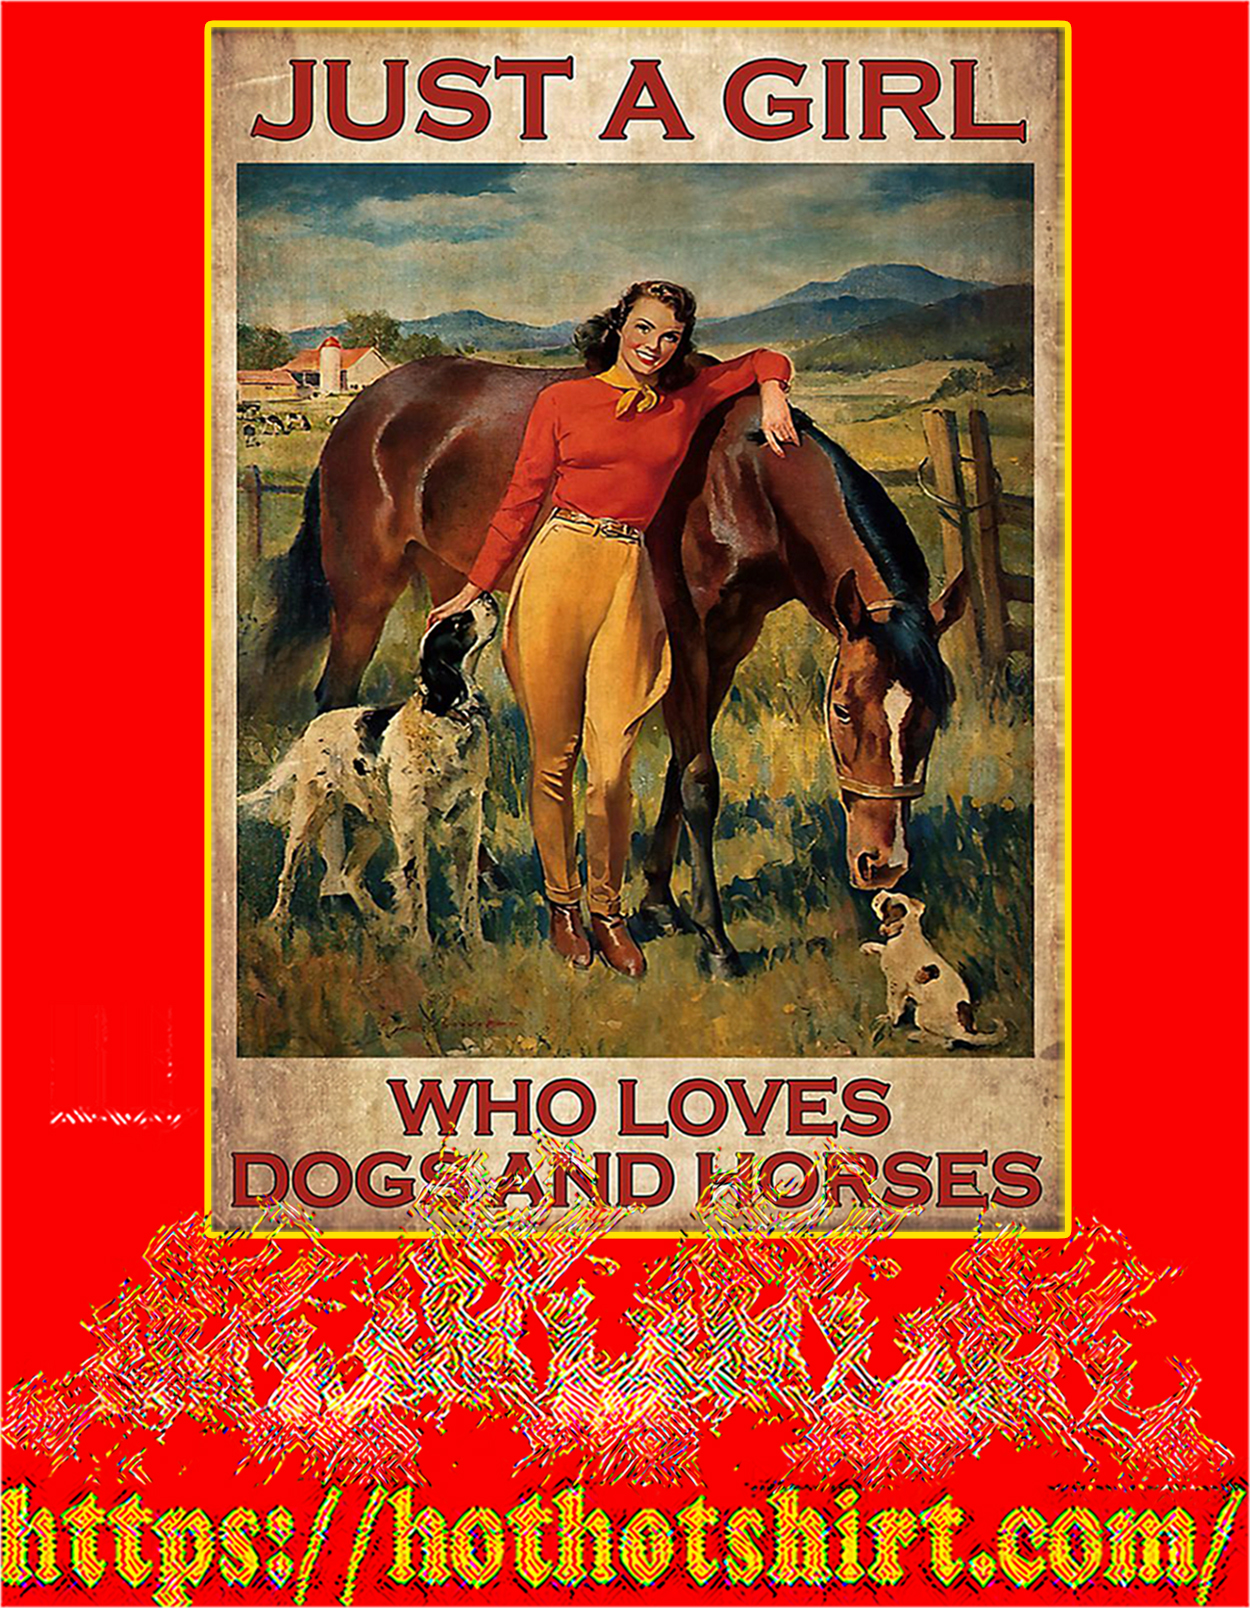 Just a girl who loves dogs and horses poster - A3